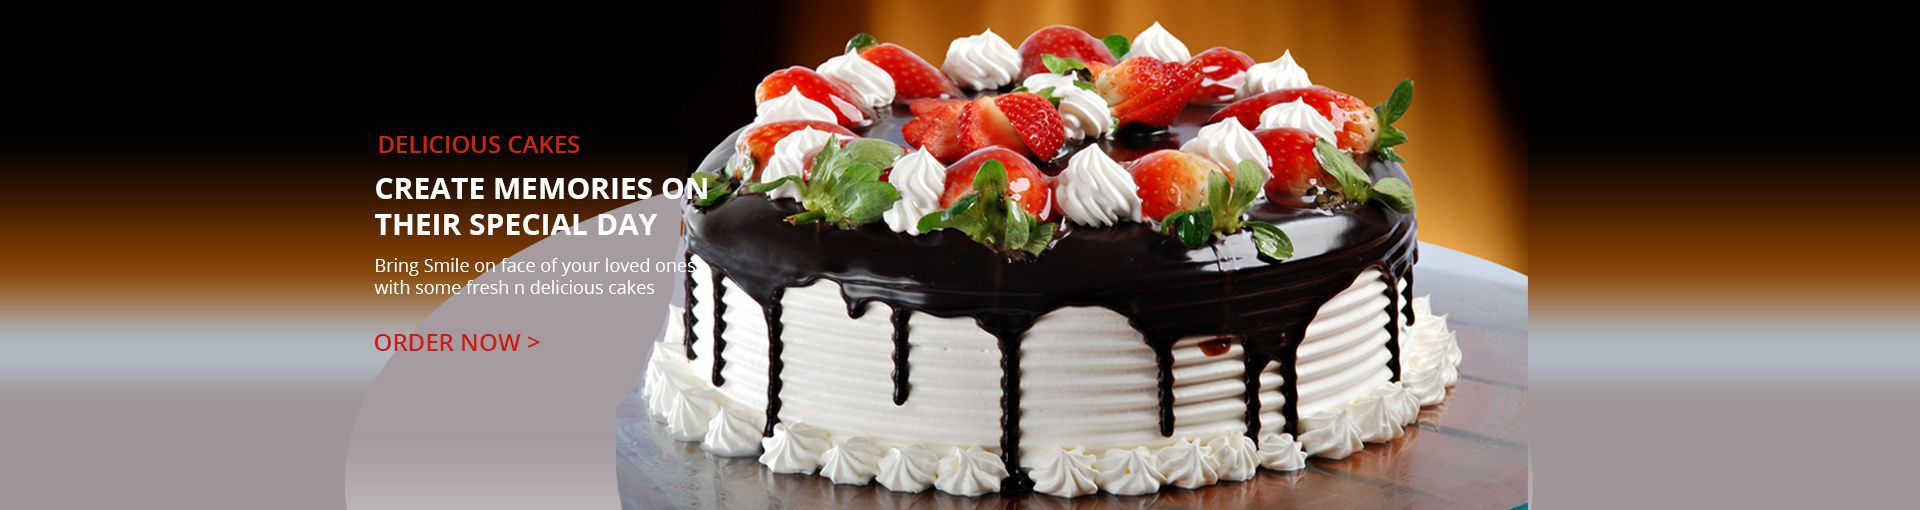 Delicious & Mouth Watering Cakes Online